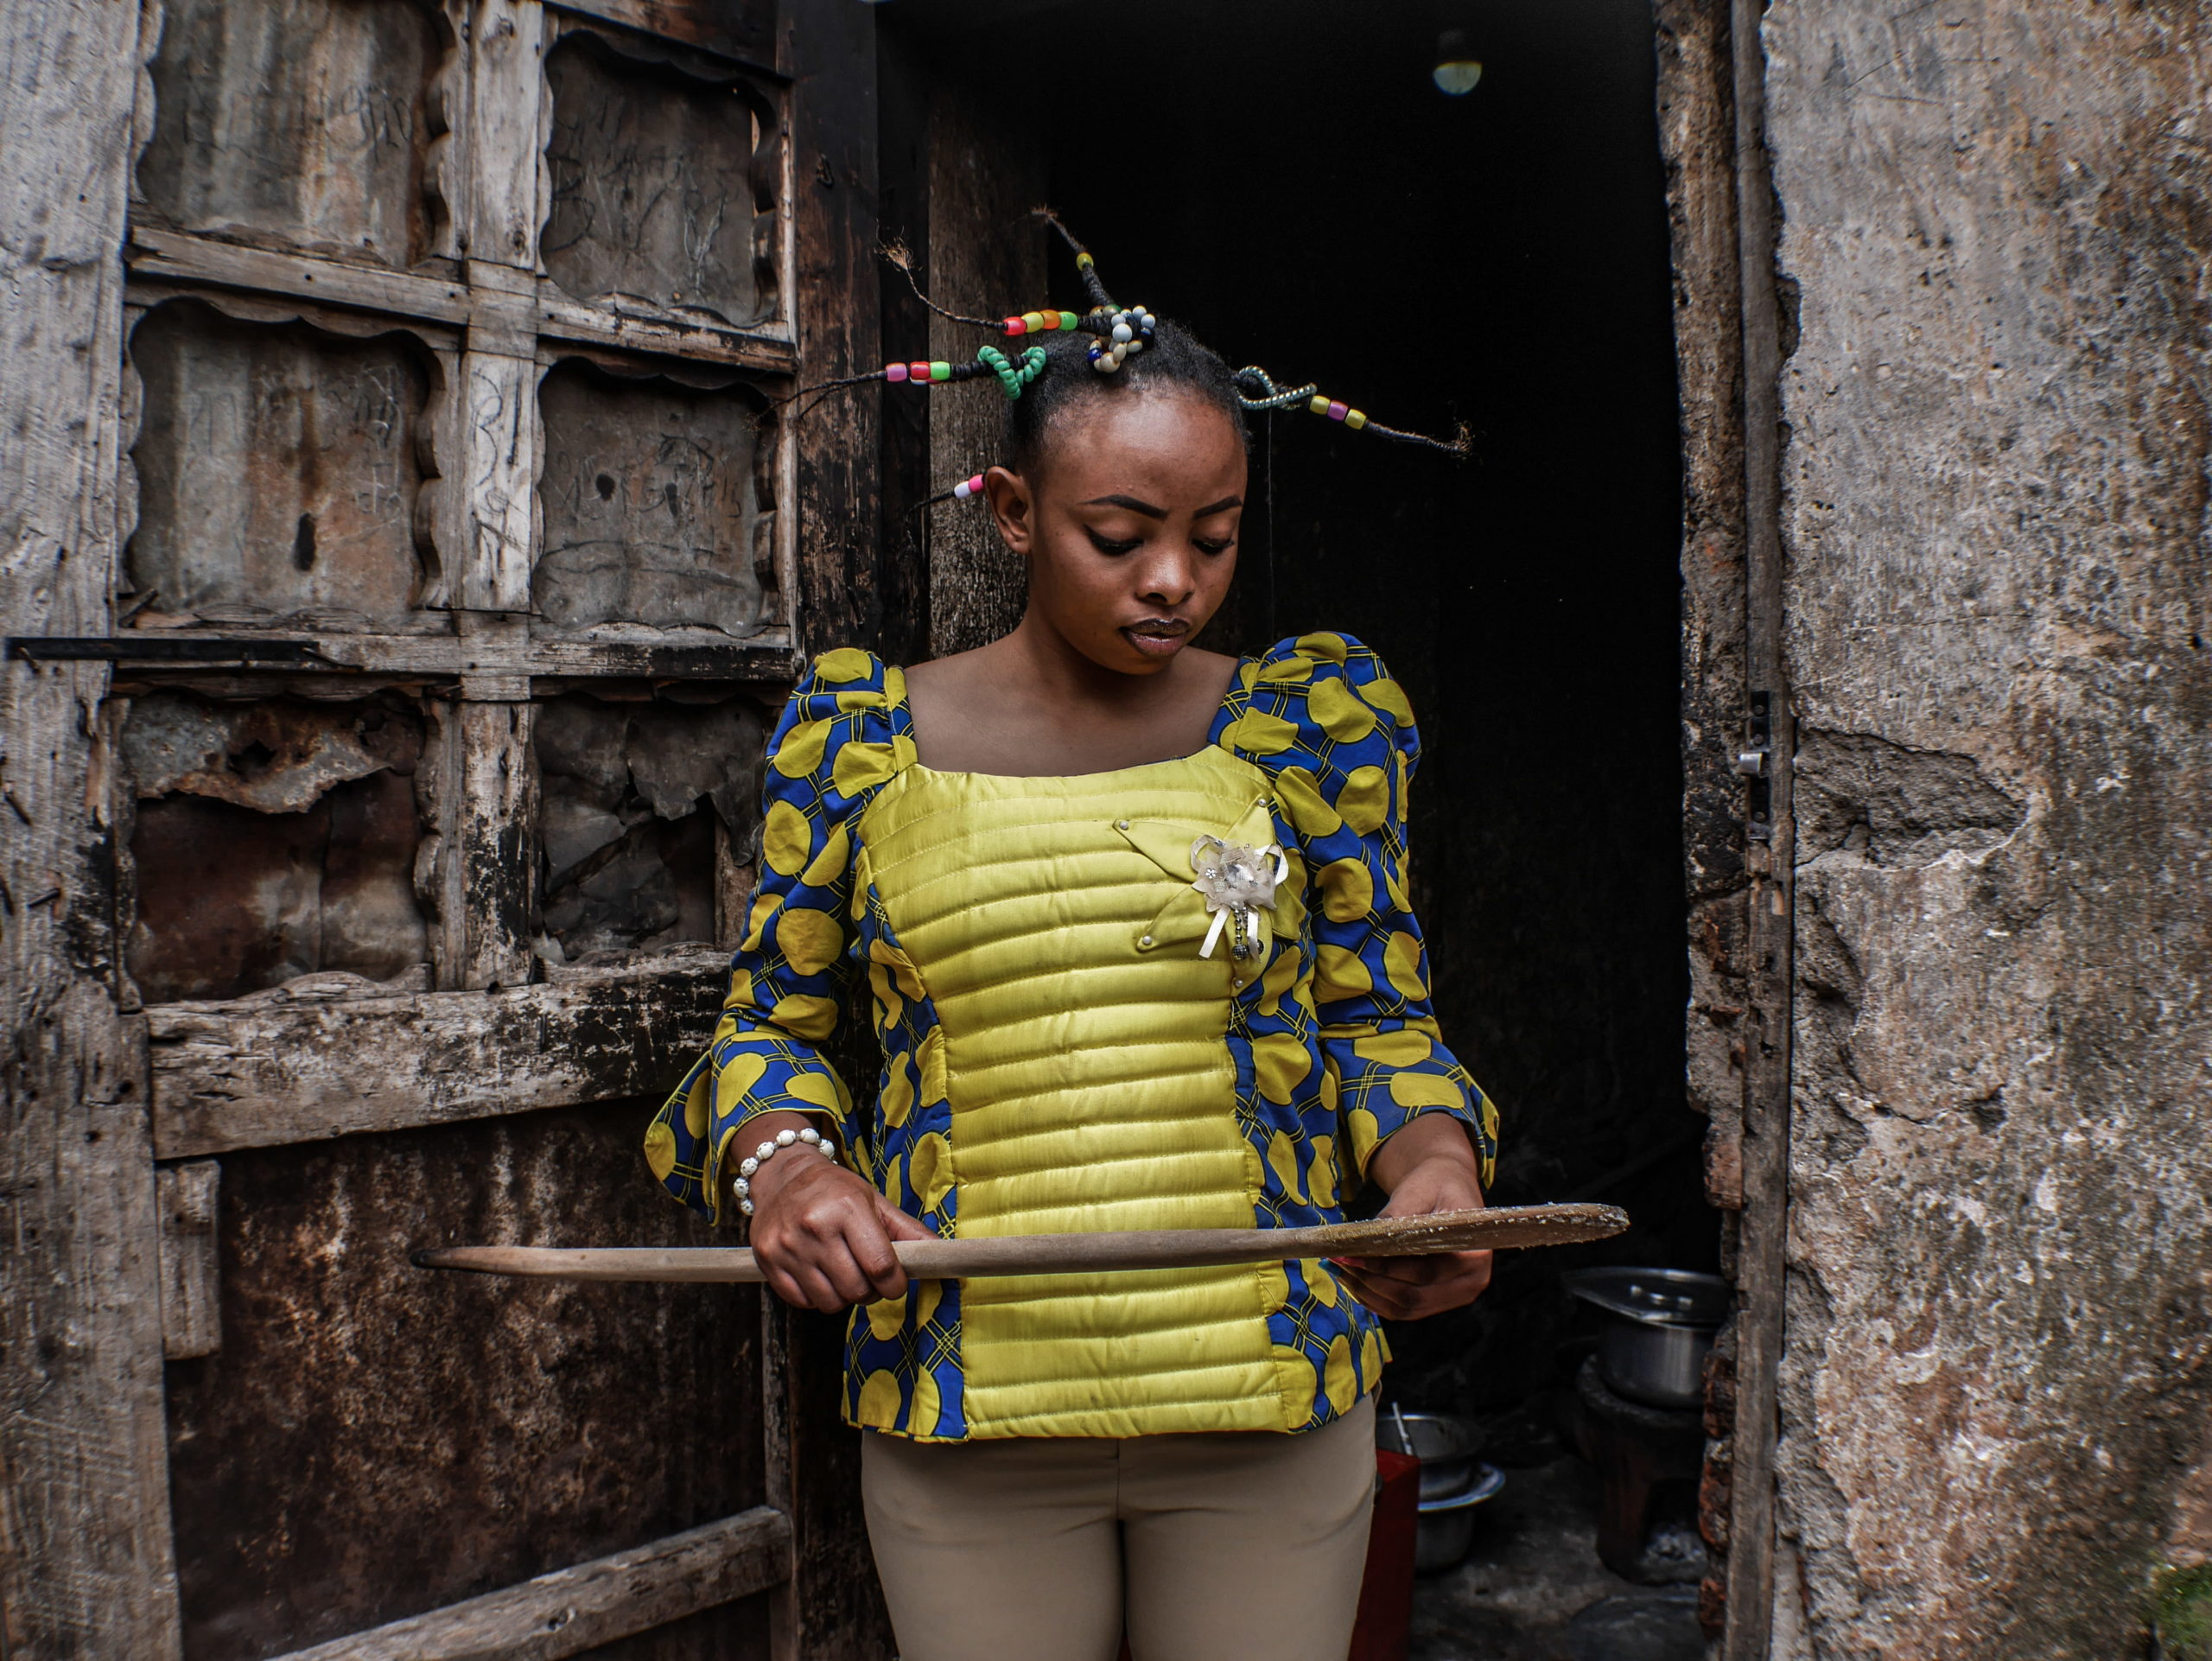 Bukavu, DRC, December 2019. A woman with a traditional hairstyle in the eastern Congolese city of Bukavu. © Raissa Rwizibuka Karama for Fondation Carmignac